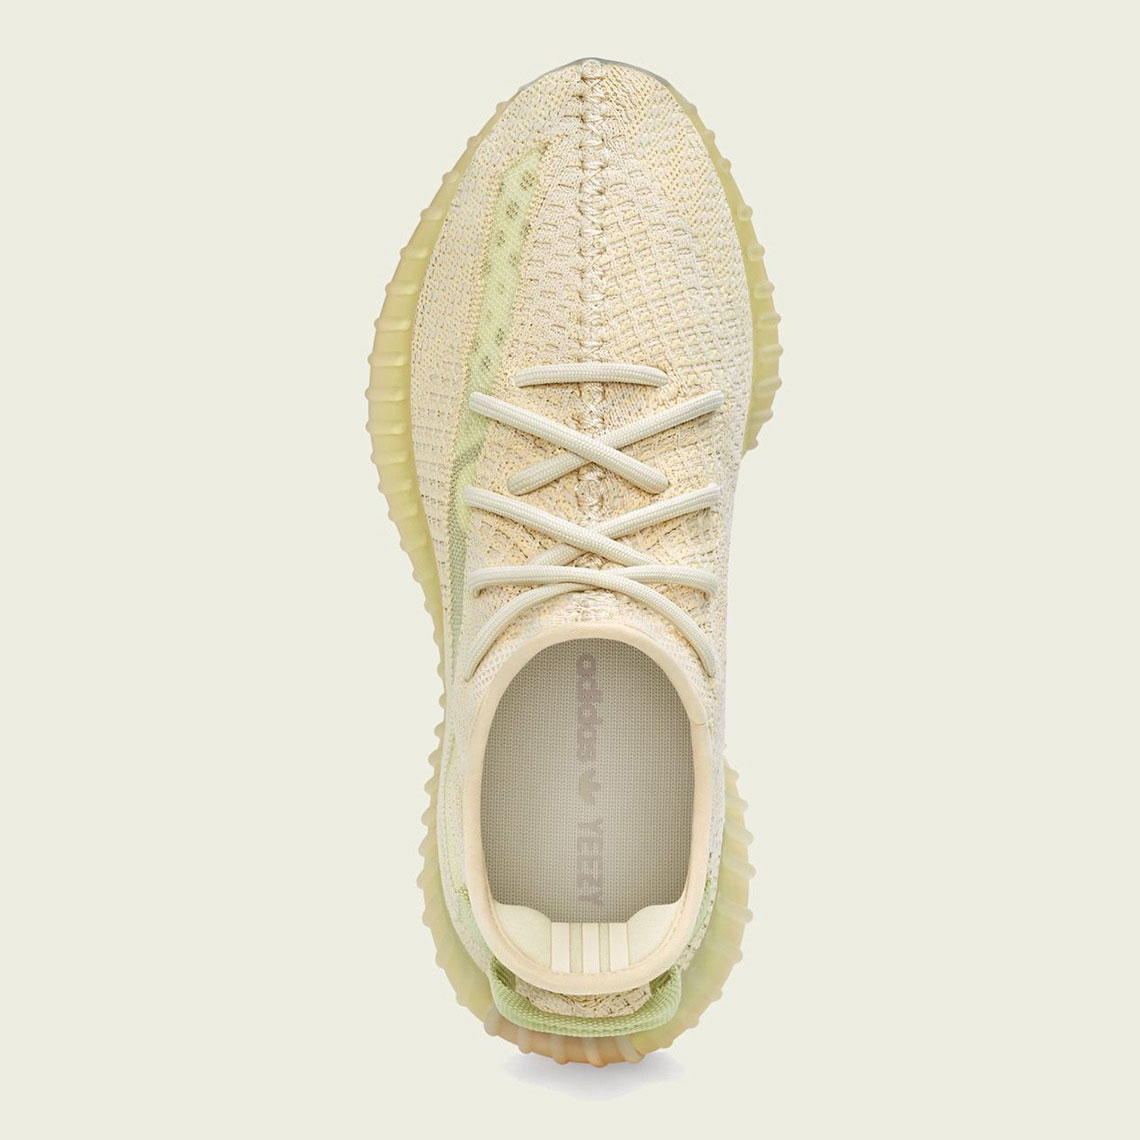 yeezy-boost-350-v2-flax-release-date-4